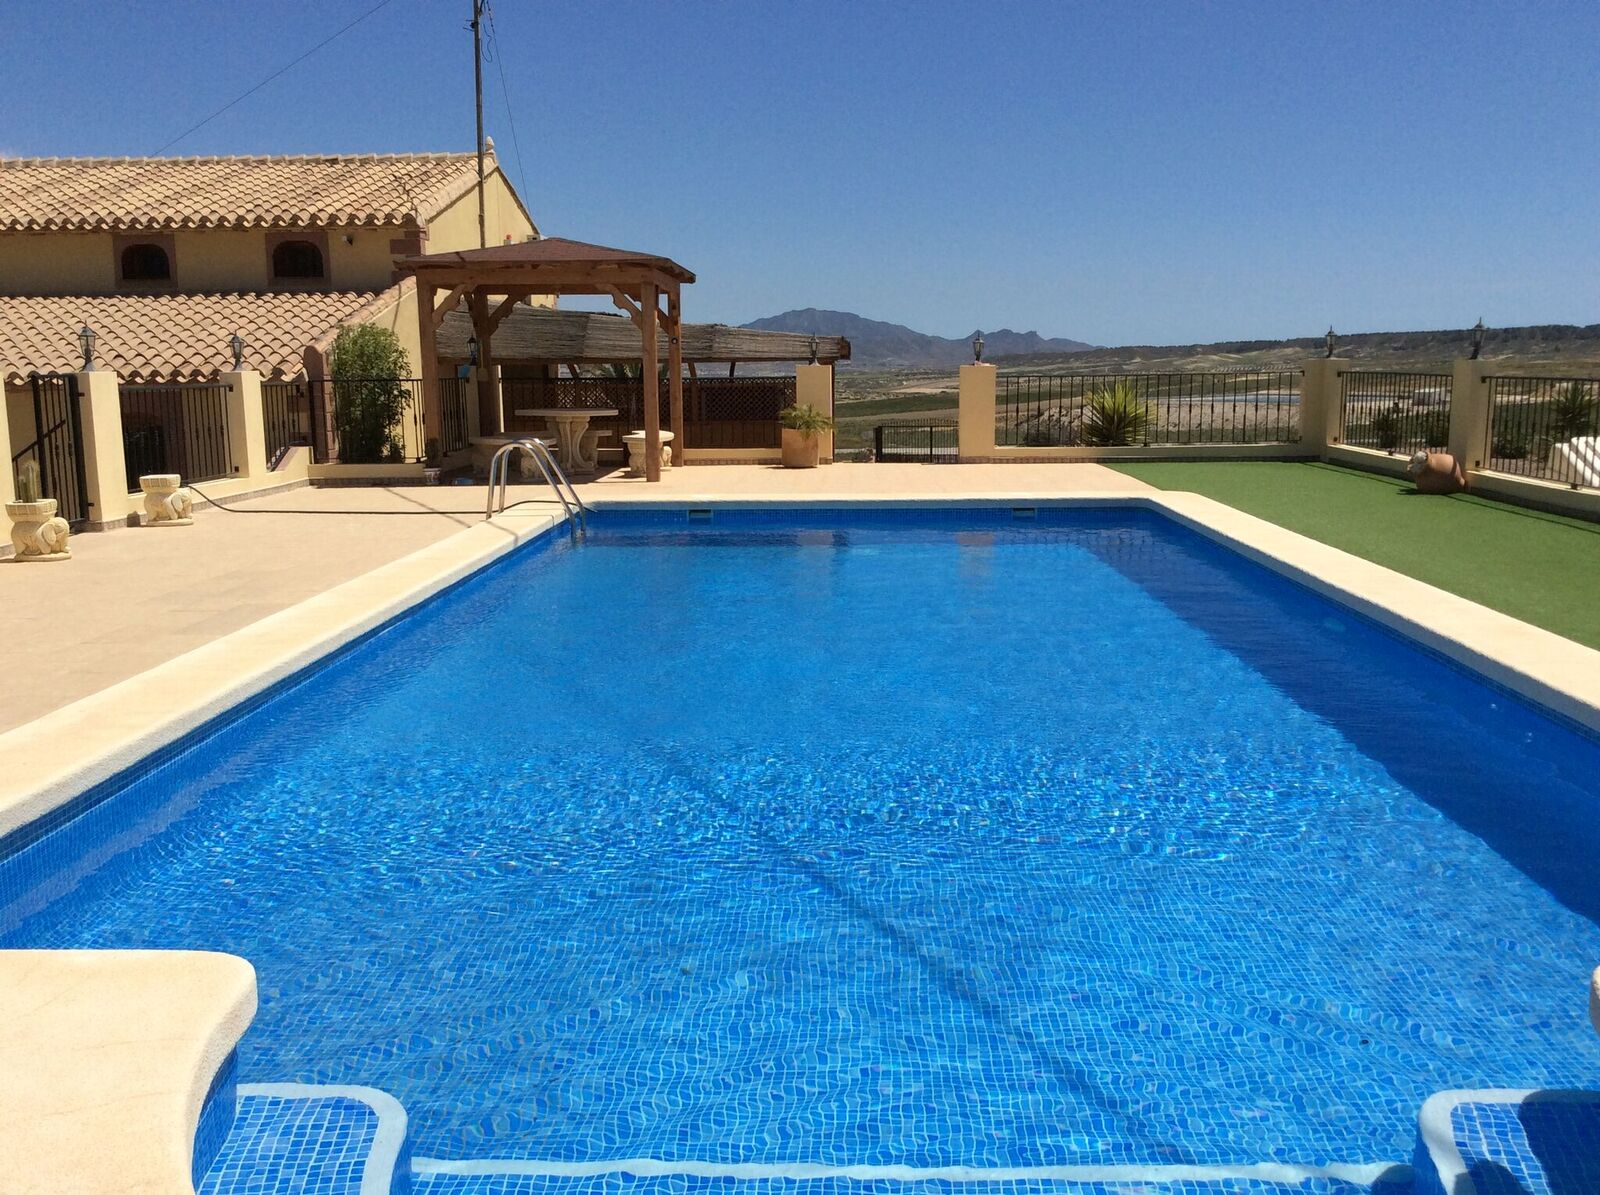 Villa with guest house and private swimming pool in el for Private swimming pool